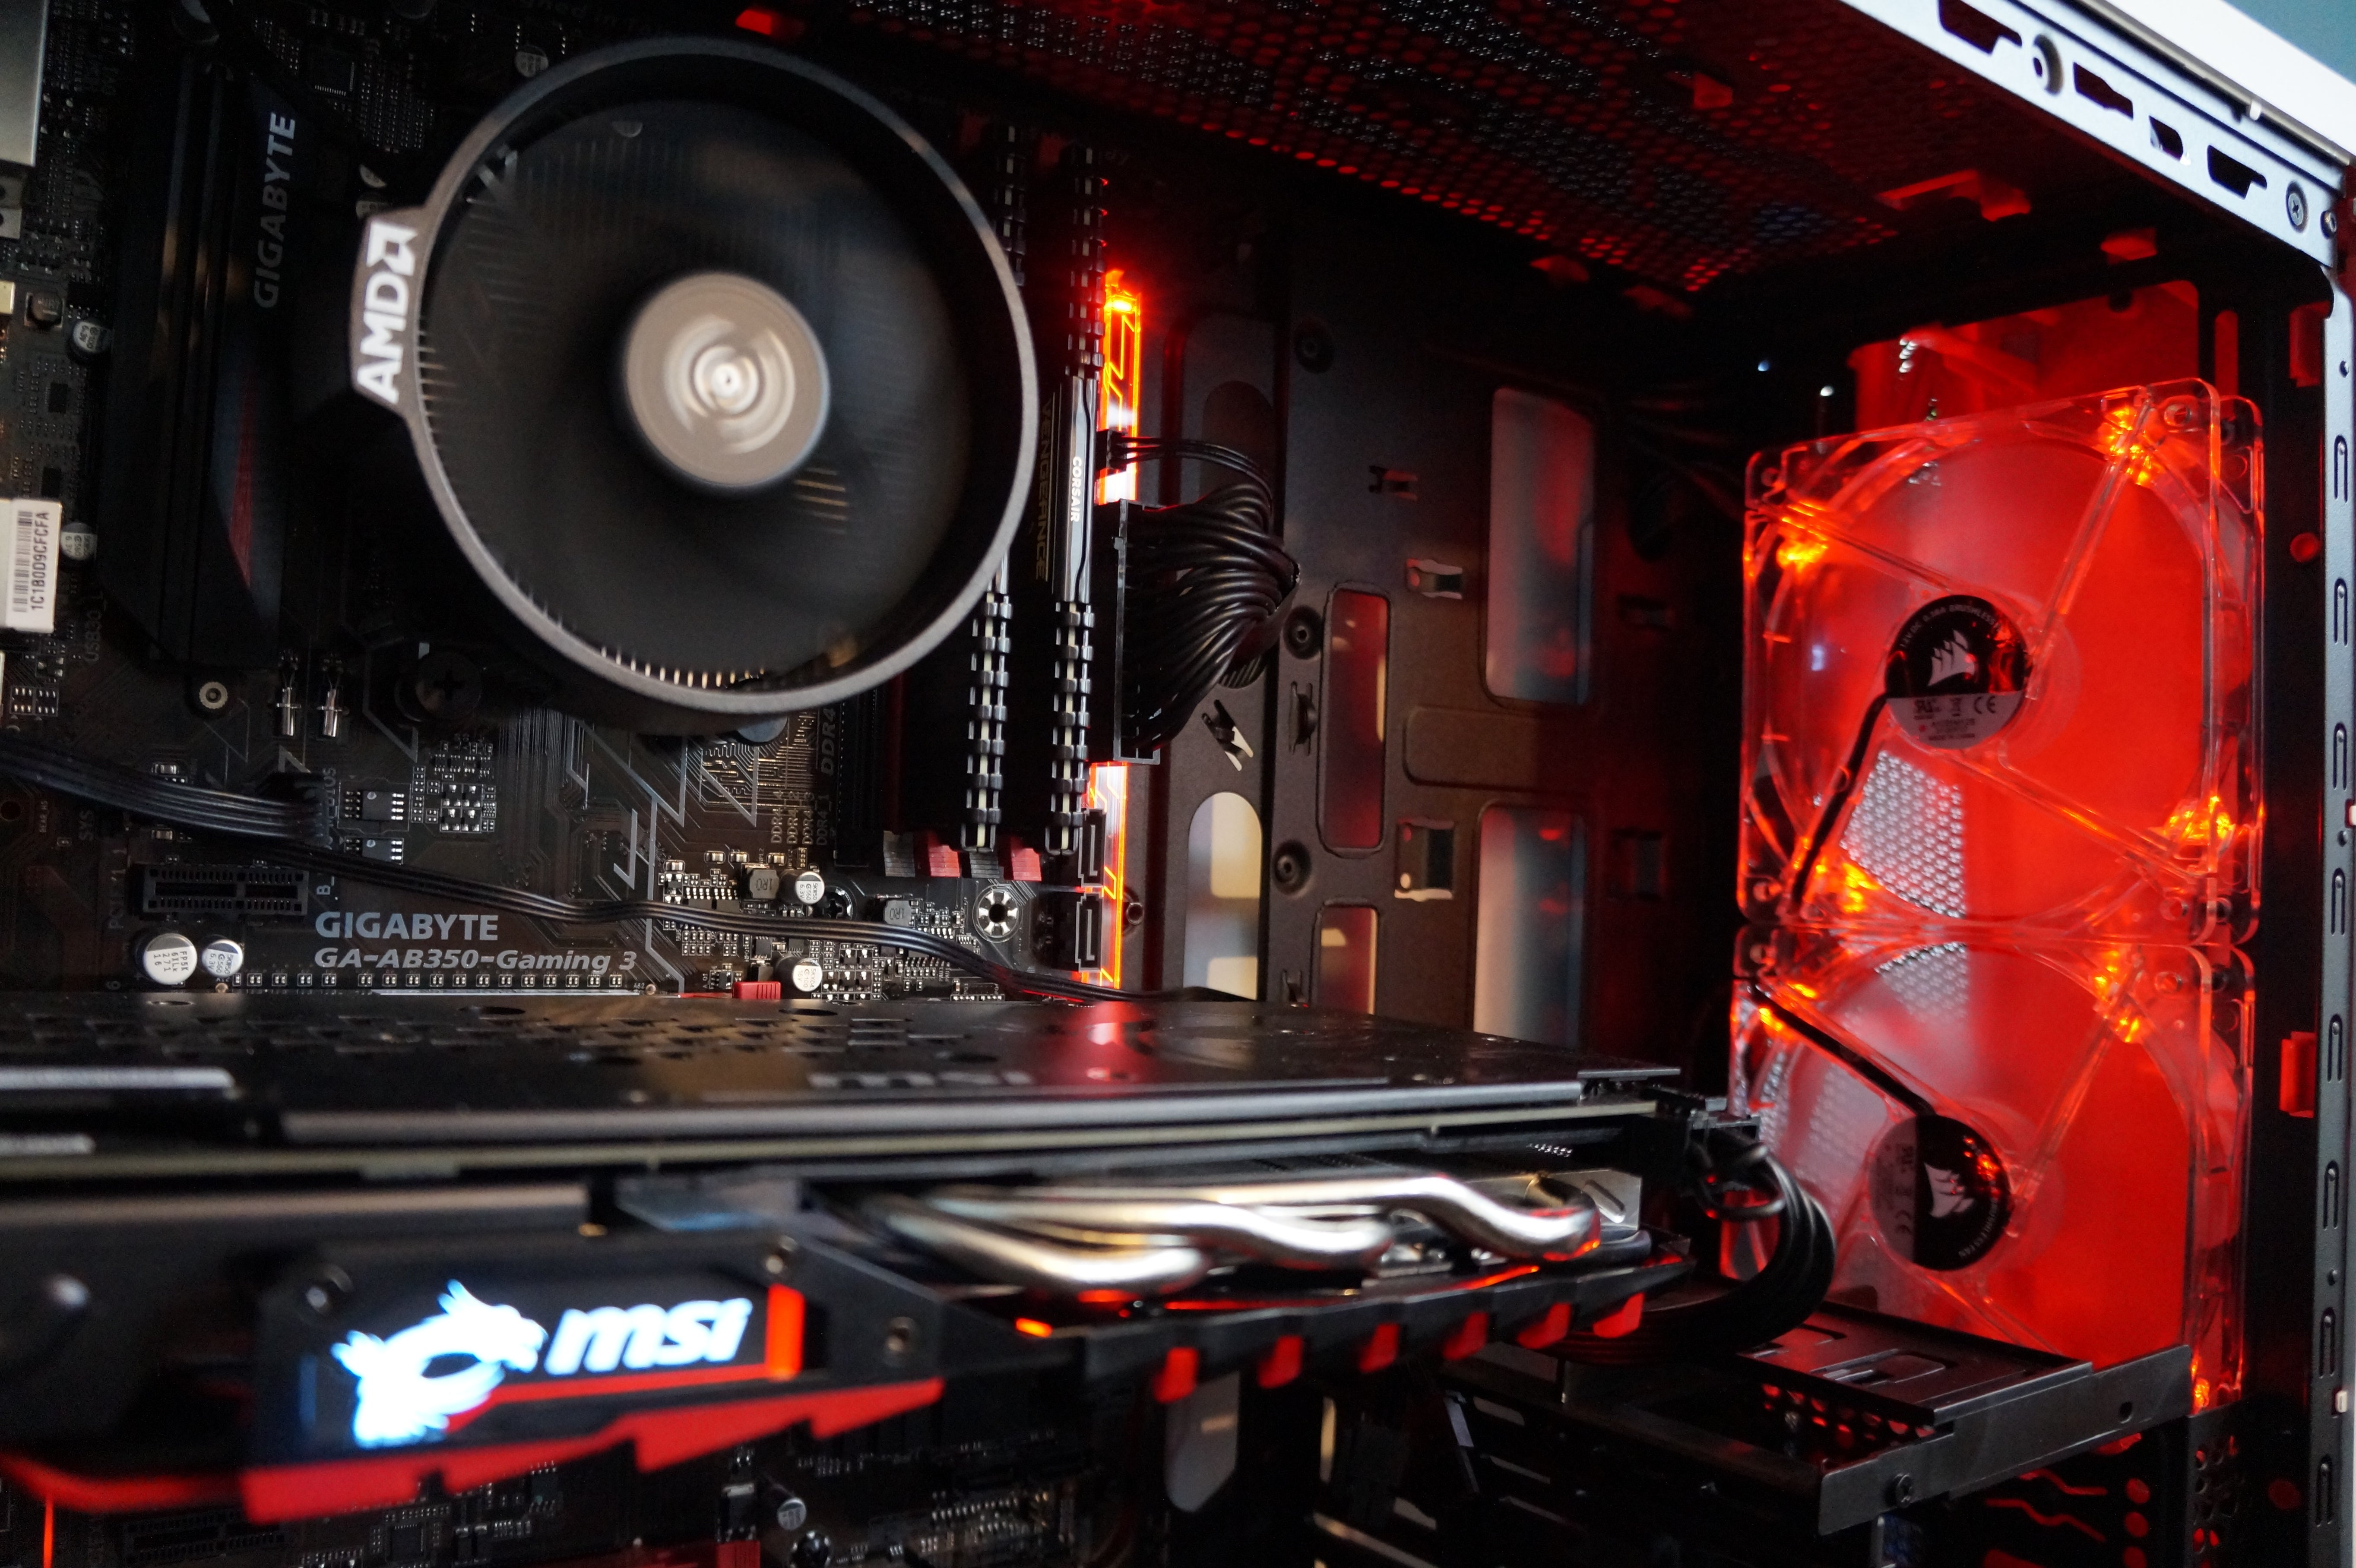 This Ryzen 5 1500X all AMD PC brings pelling 8 thread gaming to the masses